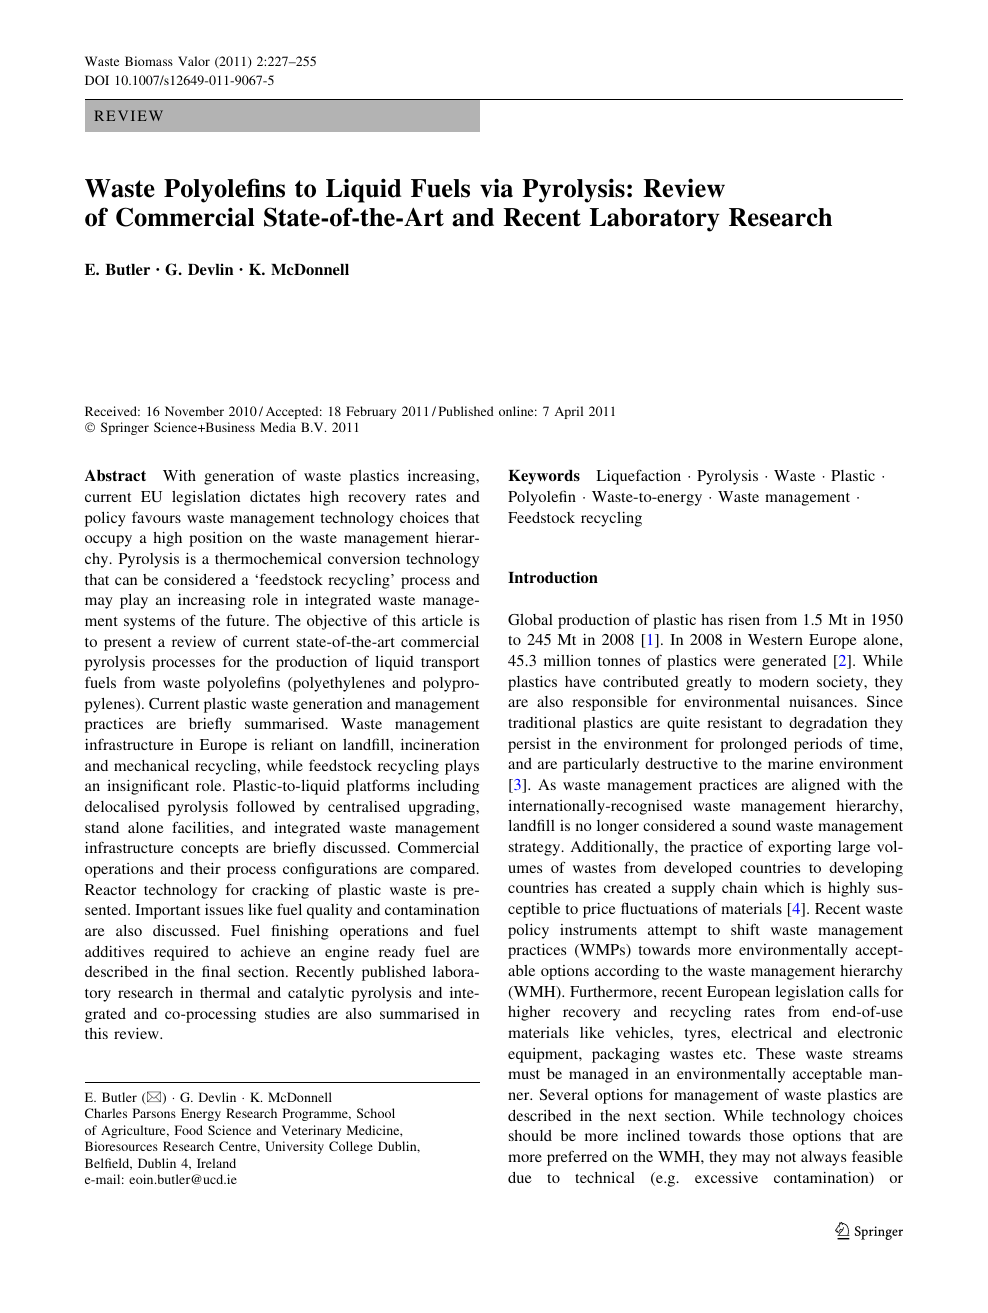 Waste Polyolefins to Liquid Fuels via Pyrolysis: Review of